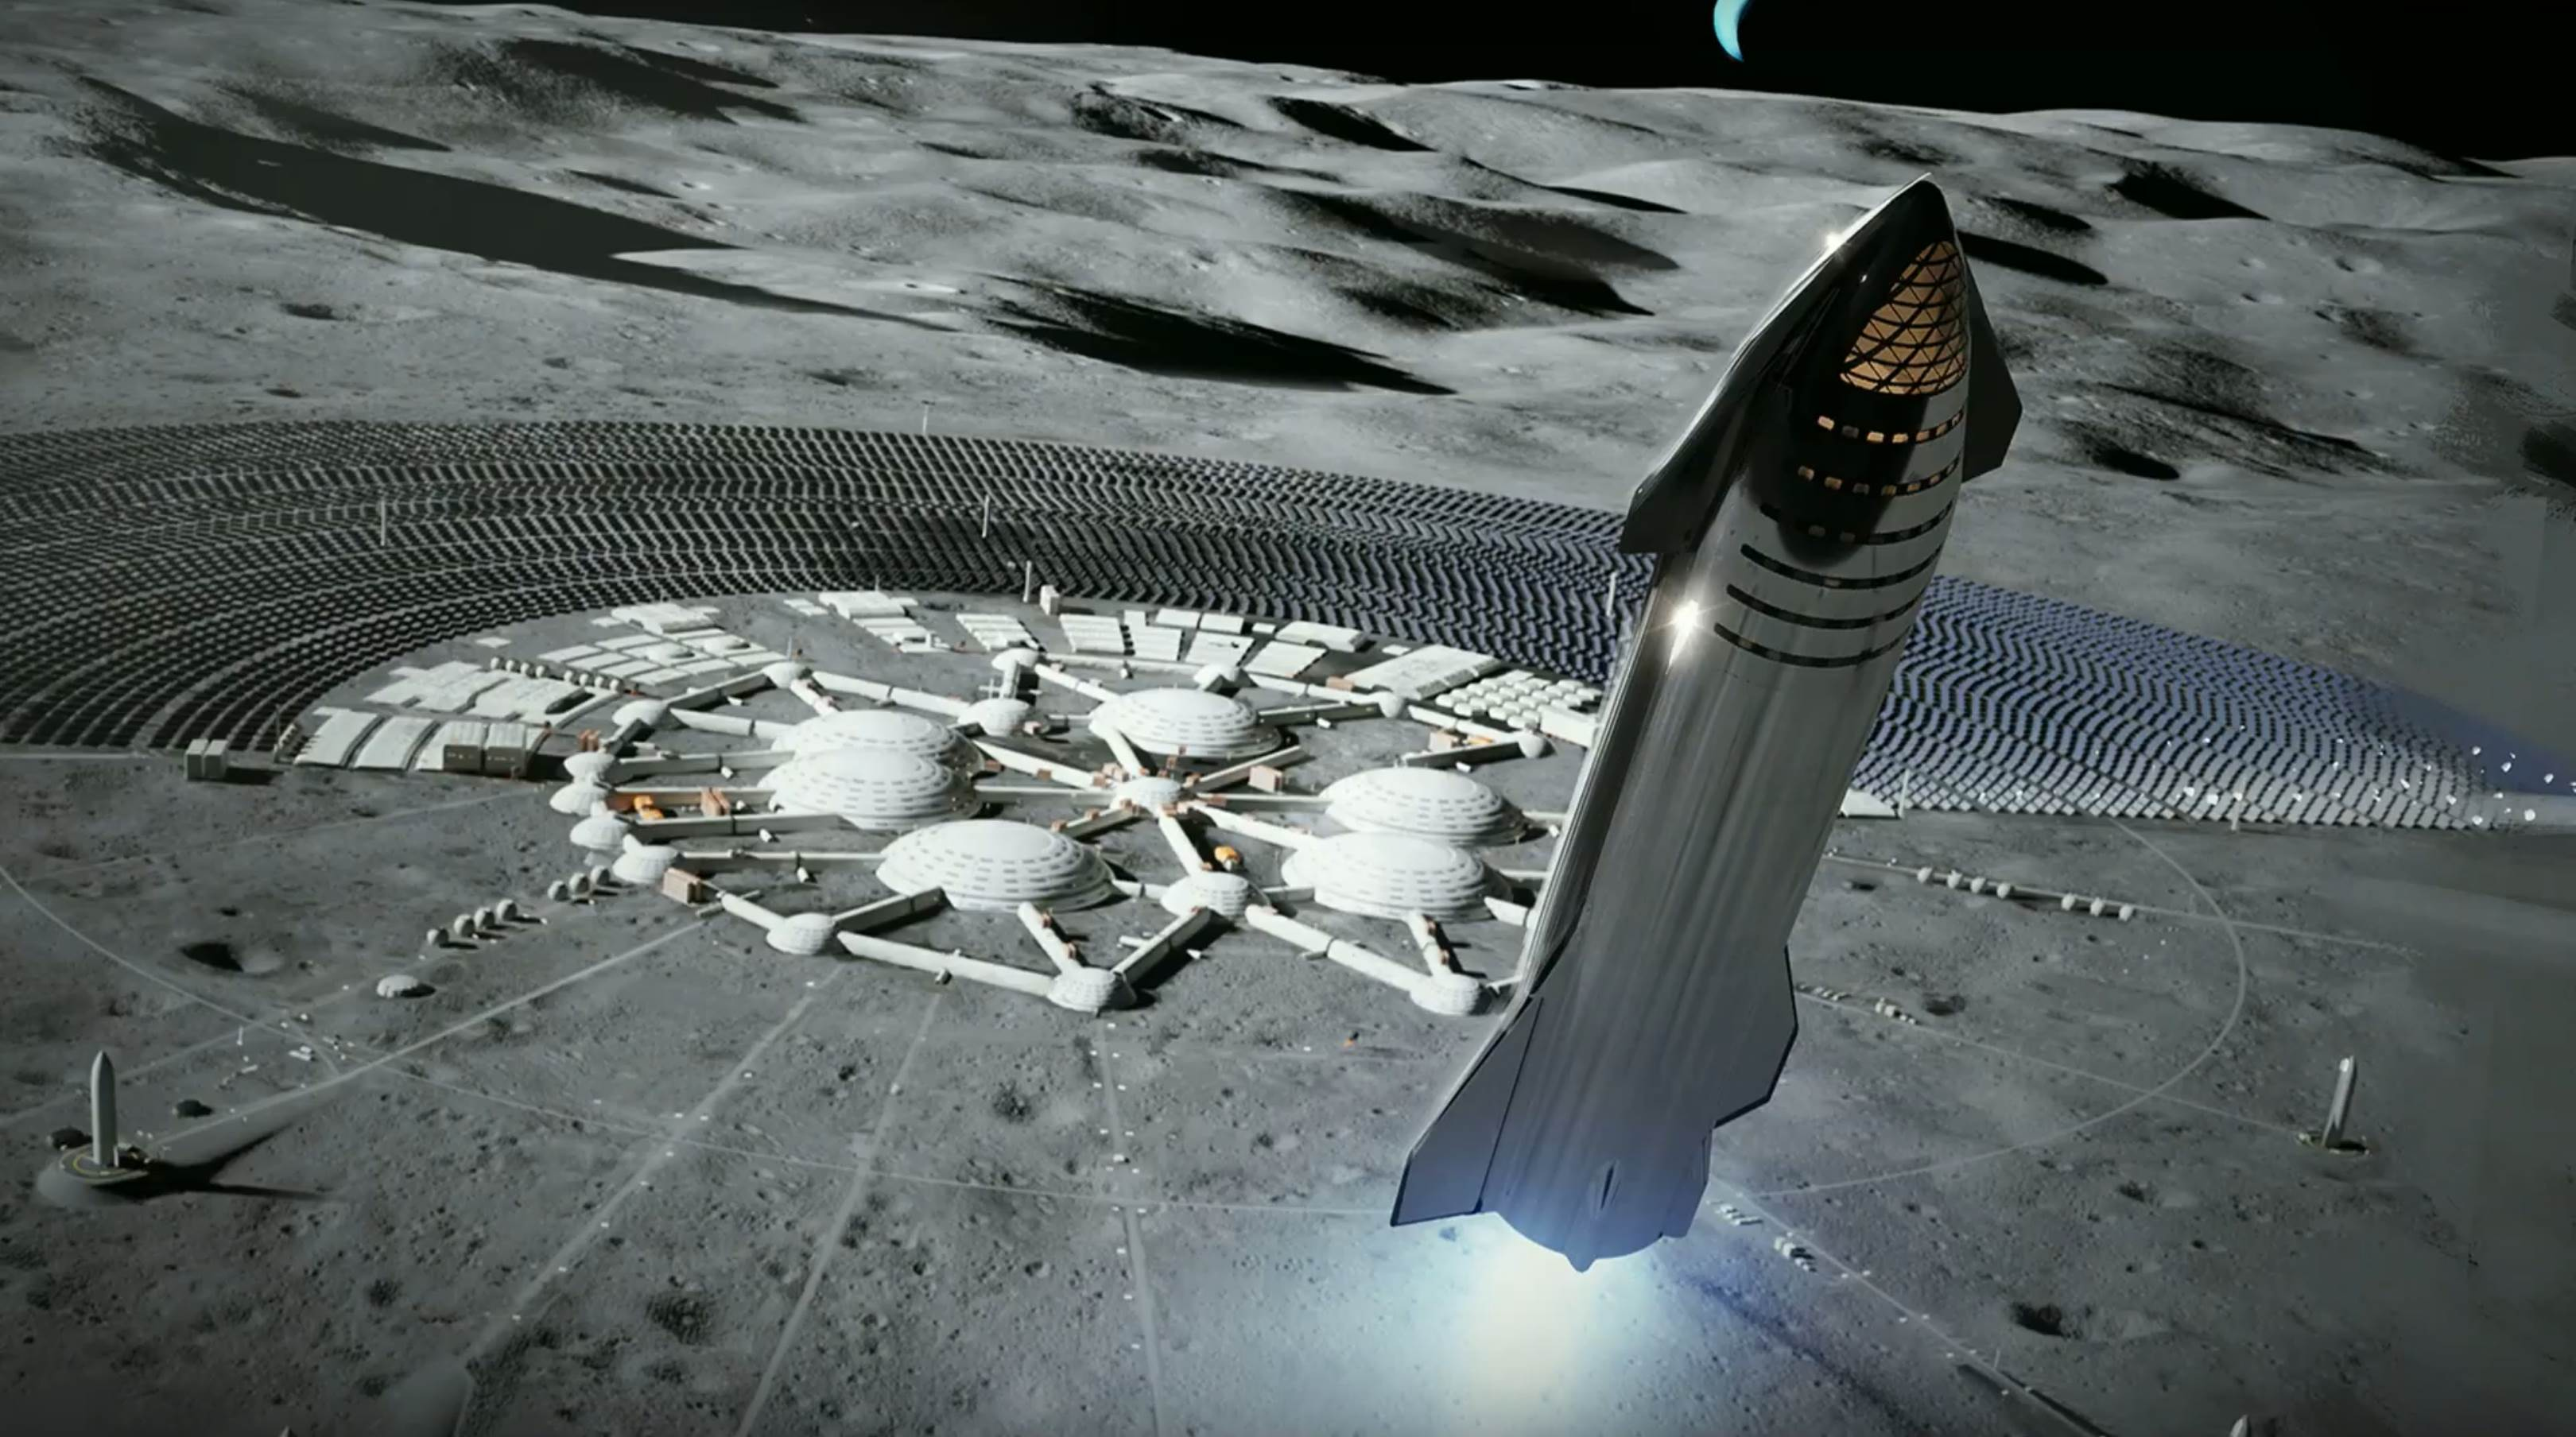 Starship 2019 Moon base render (SpaceX) 1